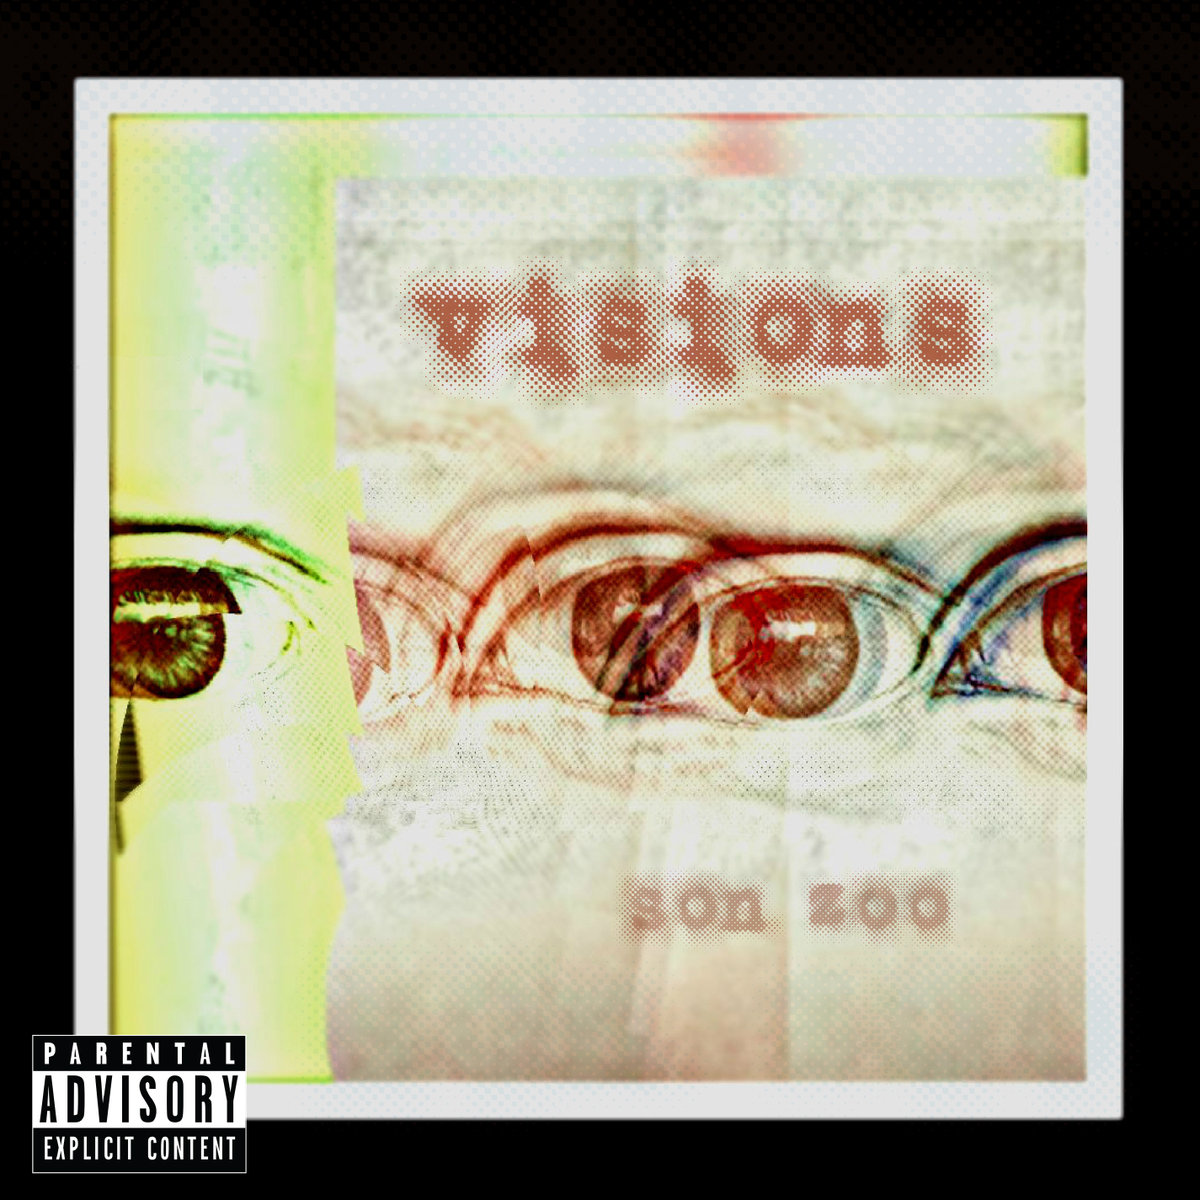 Visions - Son Zoo